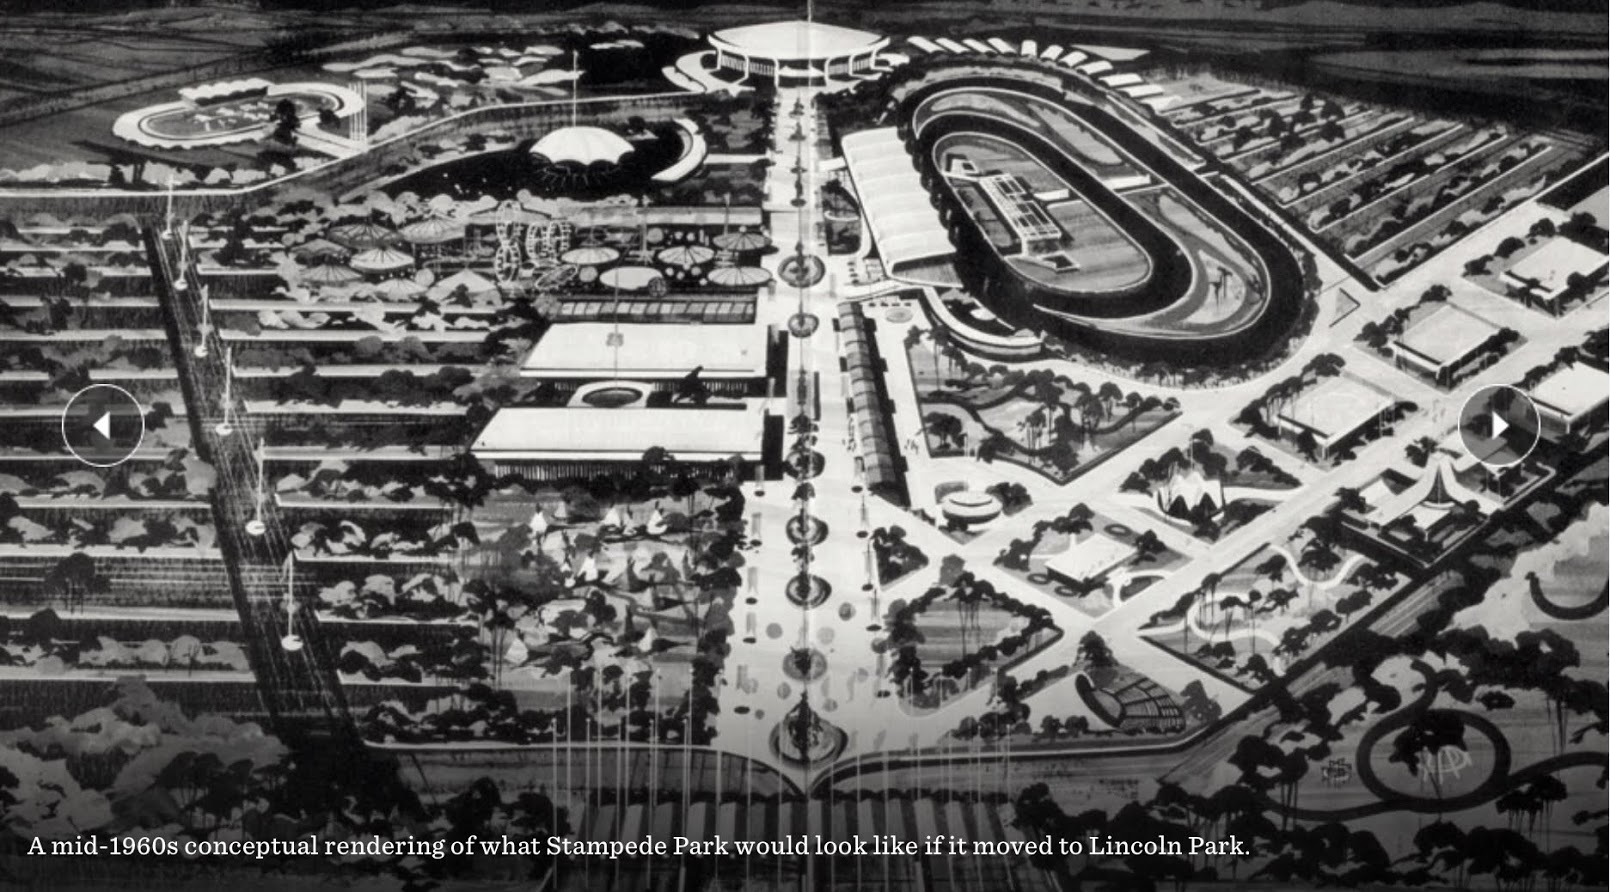 Yes in the 1960s the Calgary Stampede looked at moving from its current downtown location to the outskirts fo the city near the intersection of today's Glenmore and Crowchild Trails. Imagine how the would have change Calgary's inner-city development.